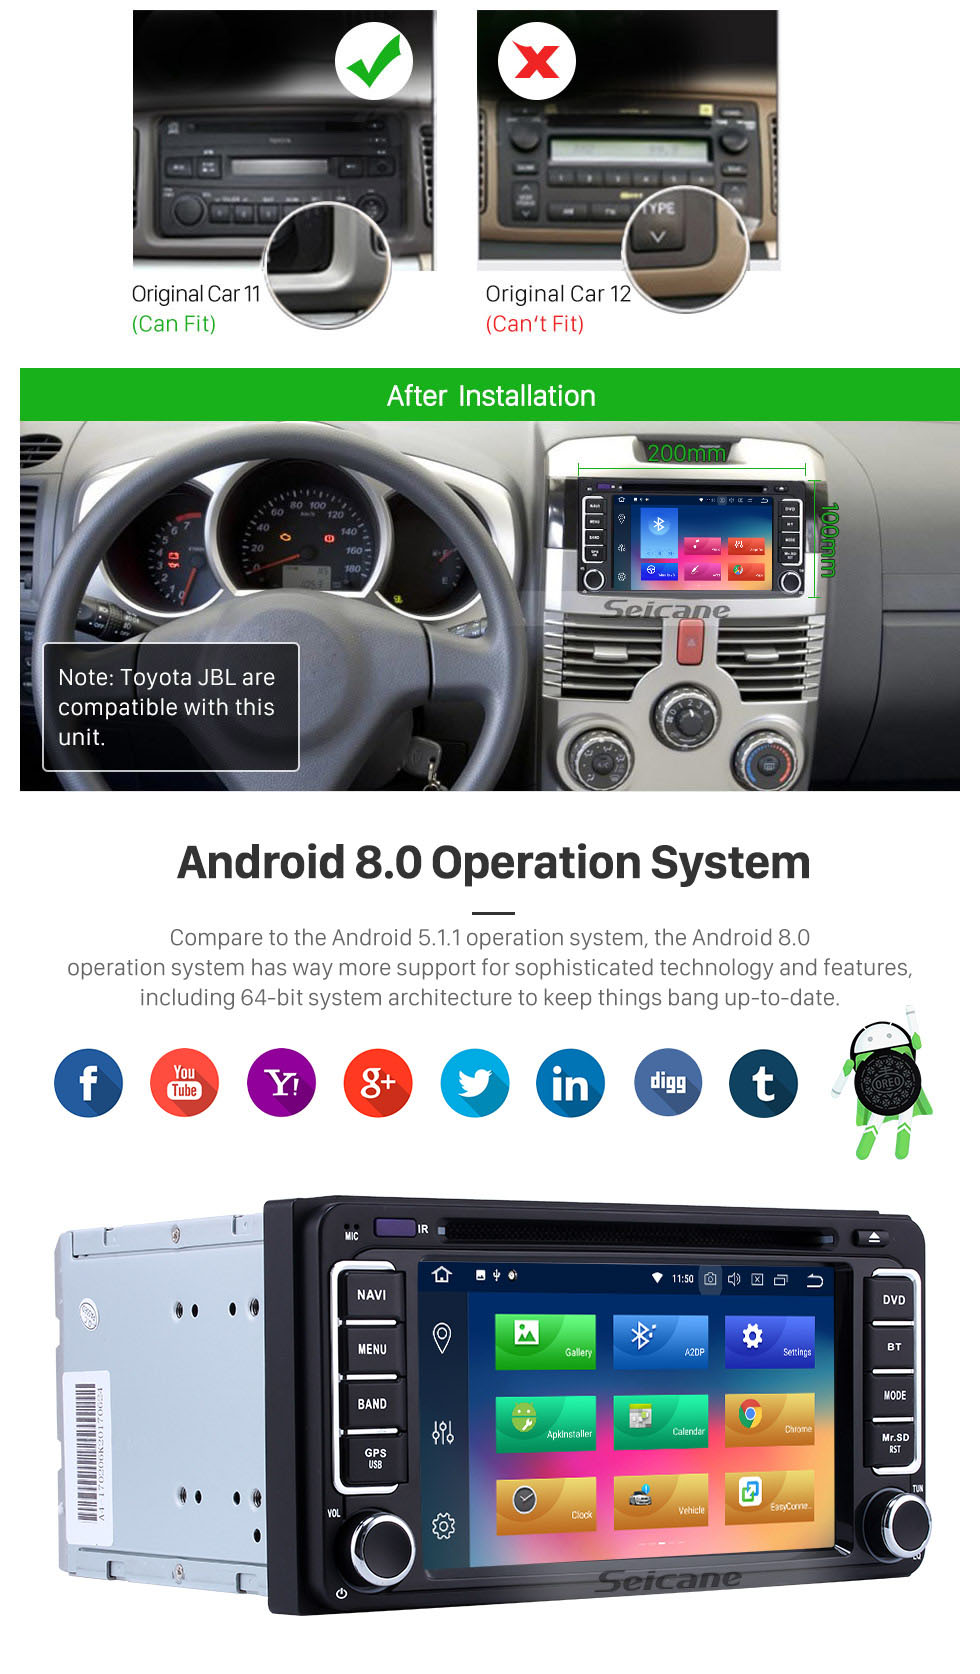 Seicane All-in-one Android 8.0 Touch Screen Radio GPS System for 2001-2011 TOYOTA HILUX with CD DVD Player Bluetooth AUX Mirror Link WiFi 4G OBD2 1080P Mp3 Mp4